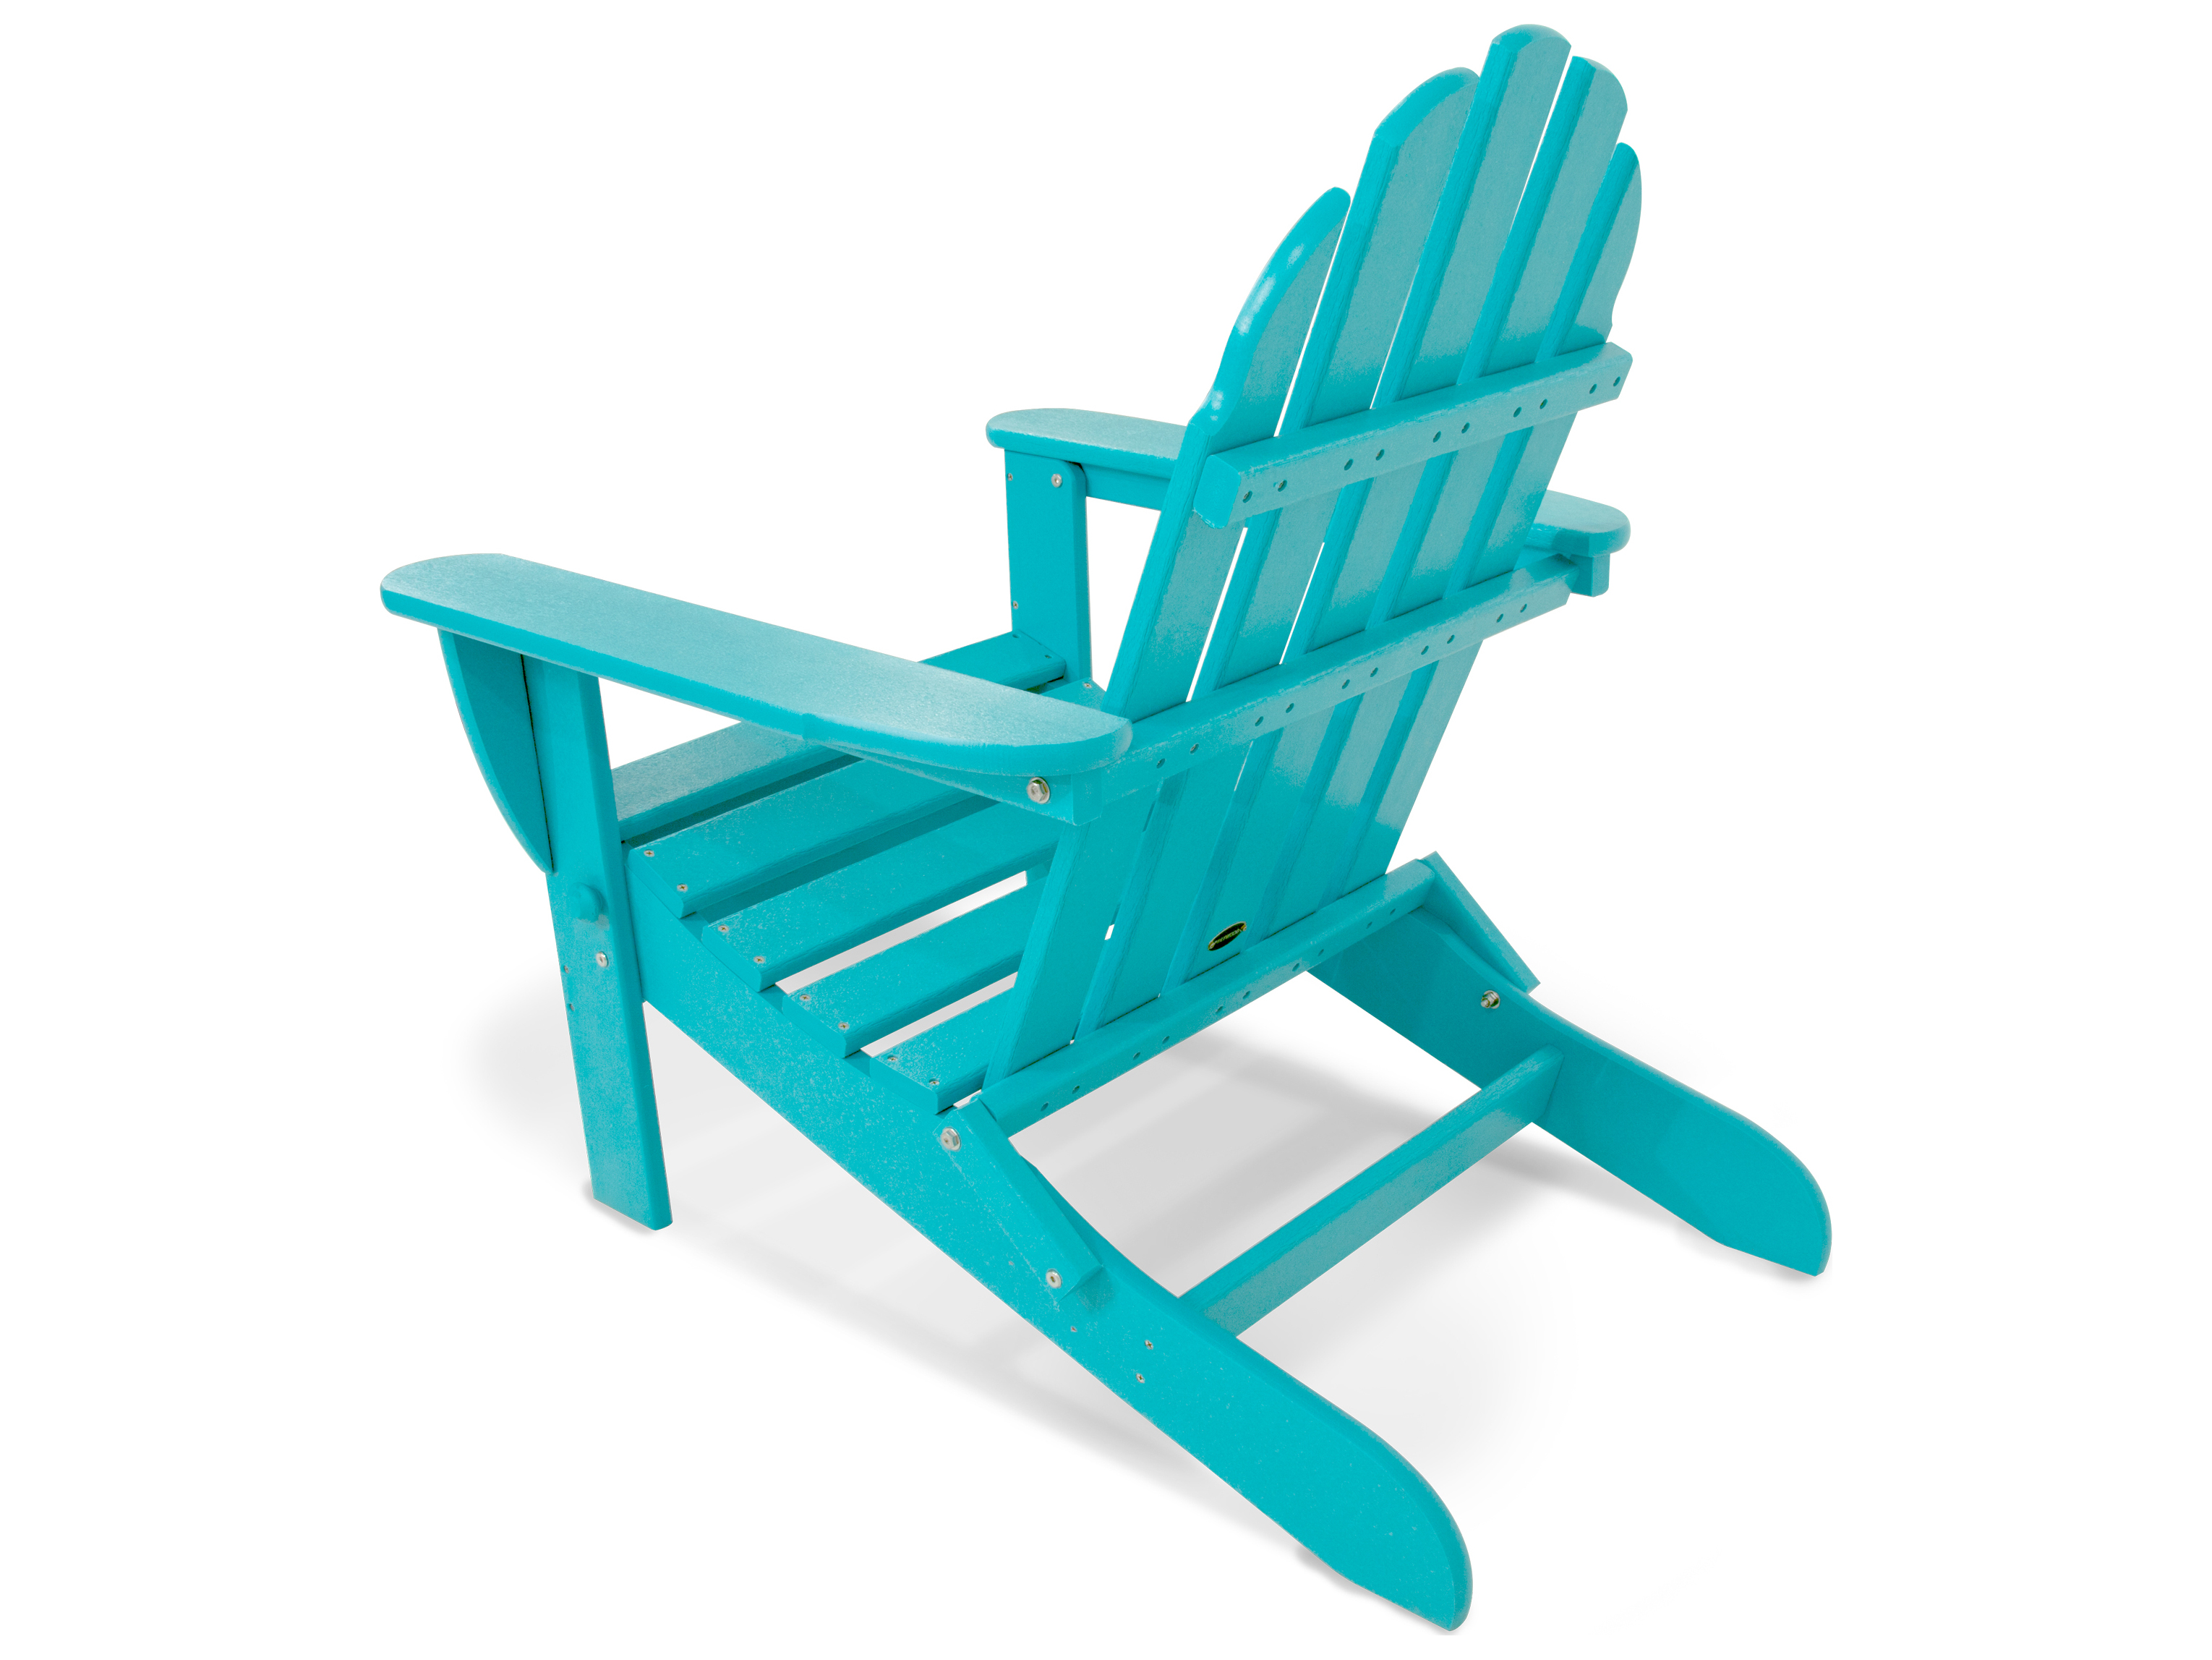 POLYWOOD Classic Adirondack Recycled Plastic Chair